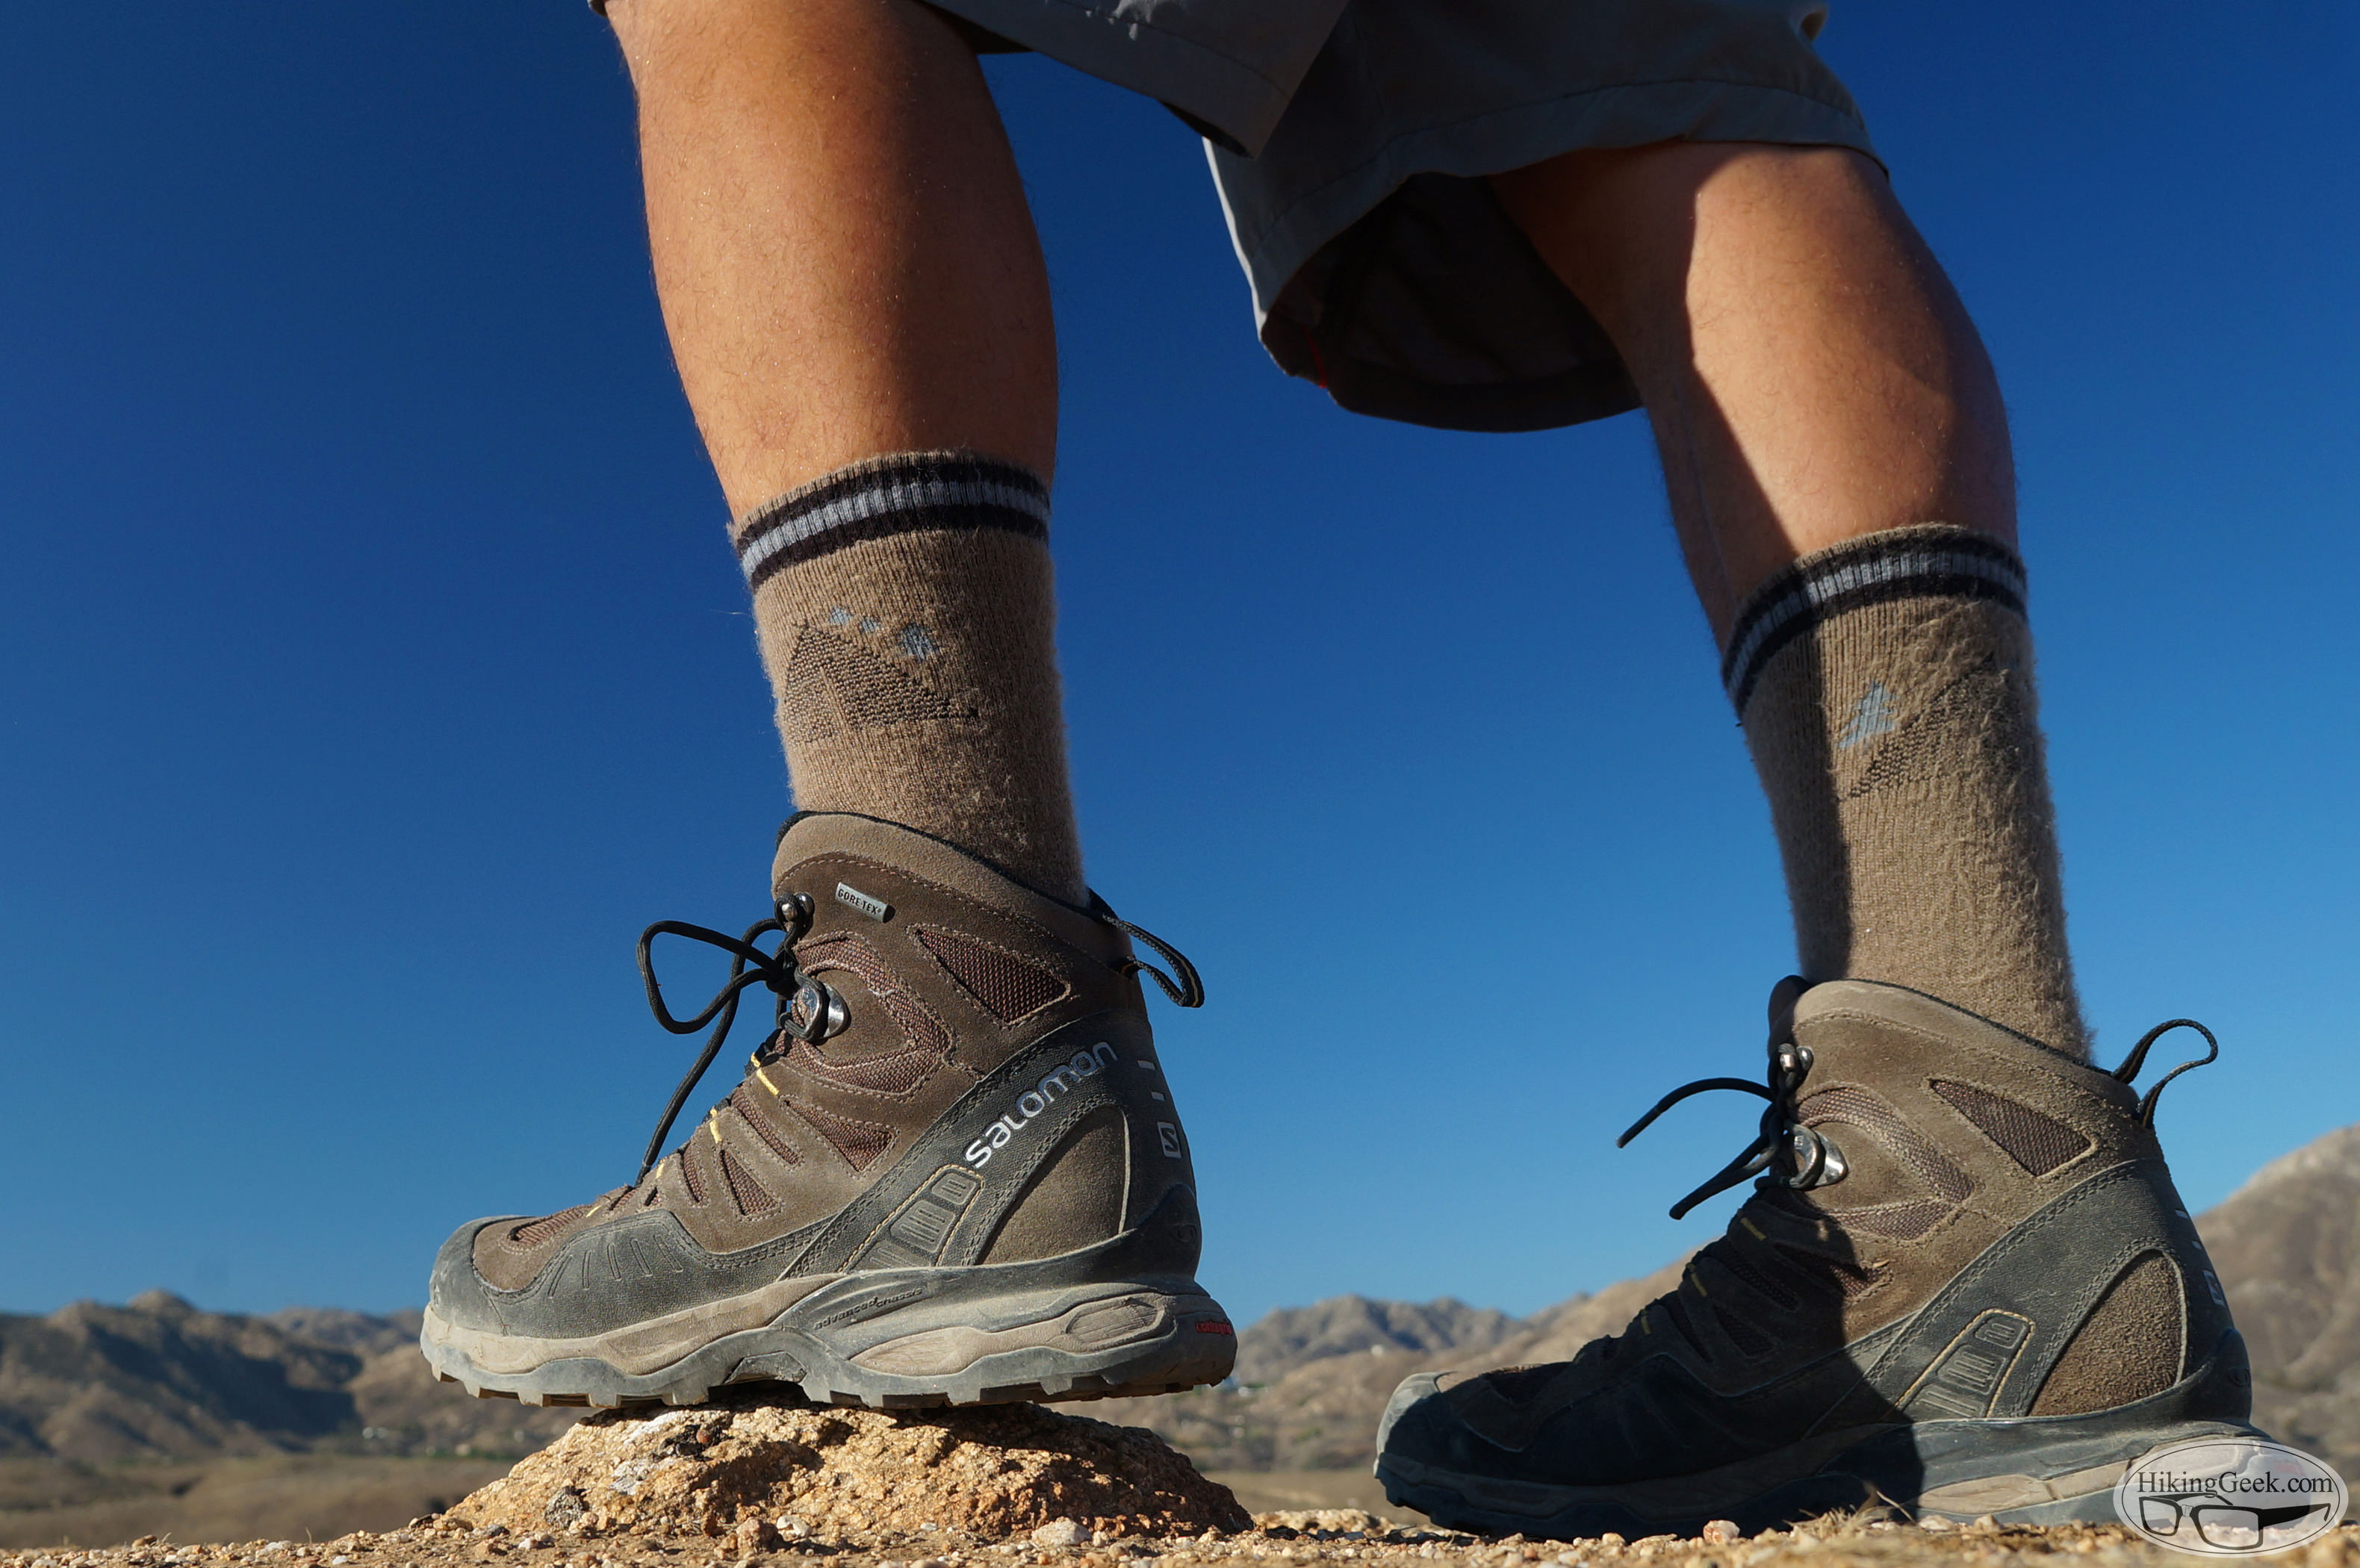 Gear Review: Farm to Feet Merino Wool Socks